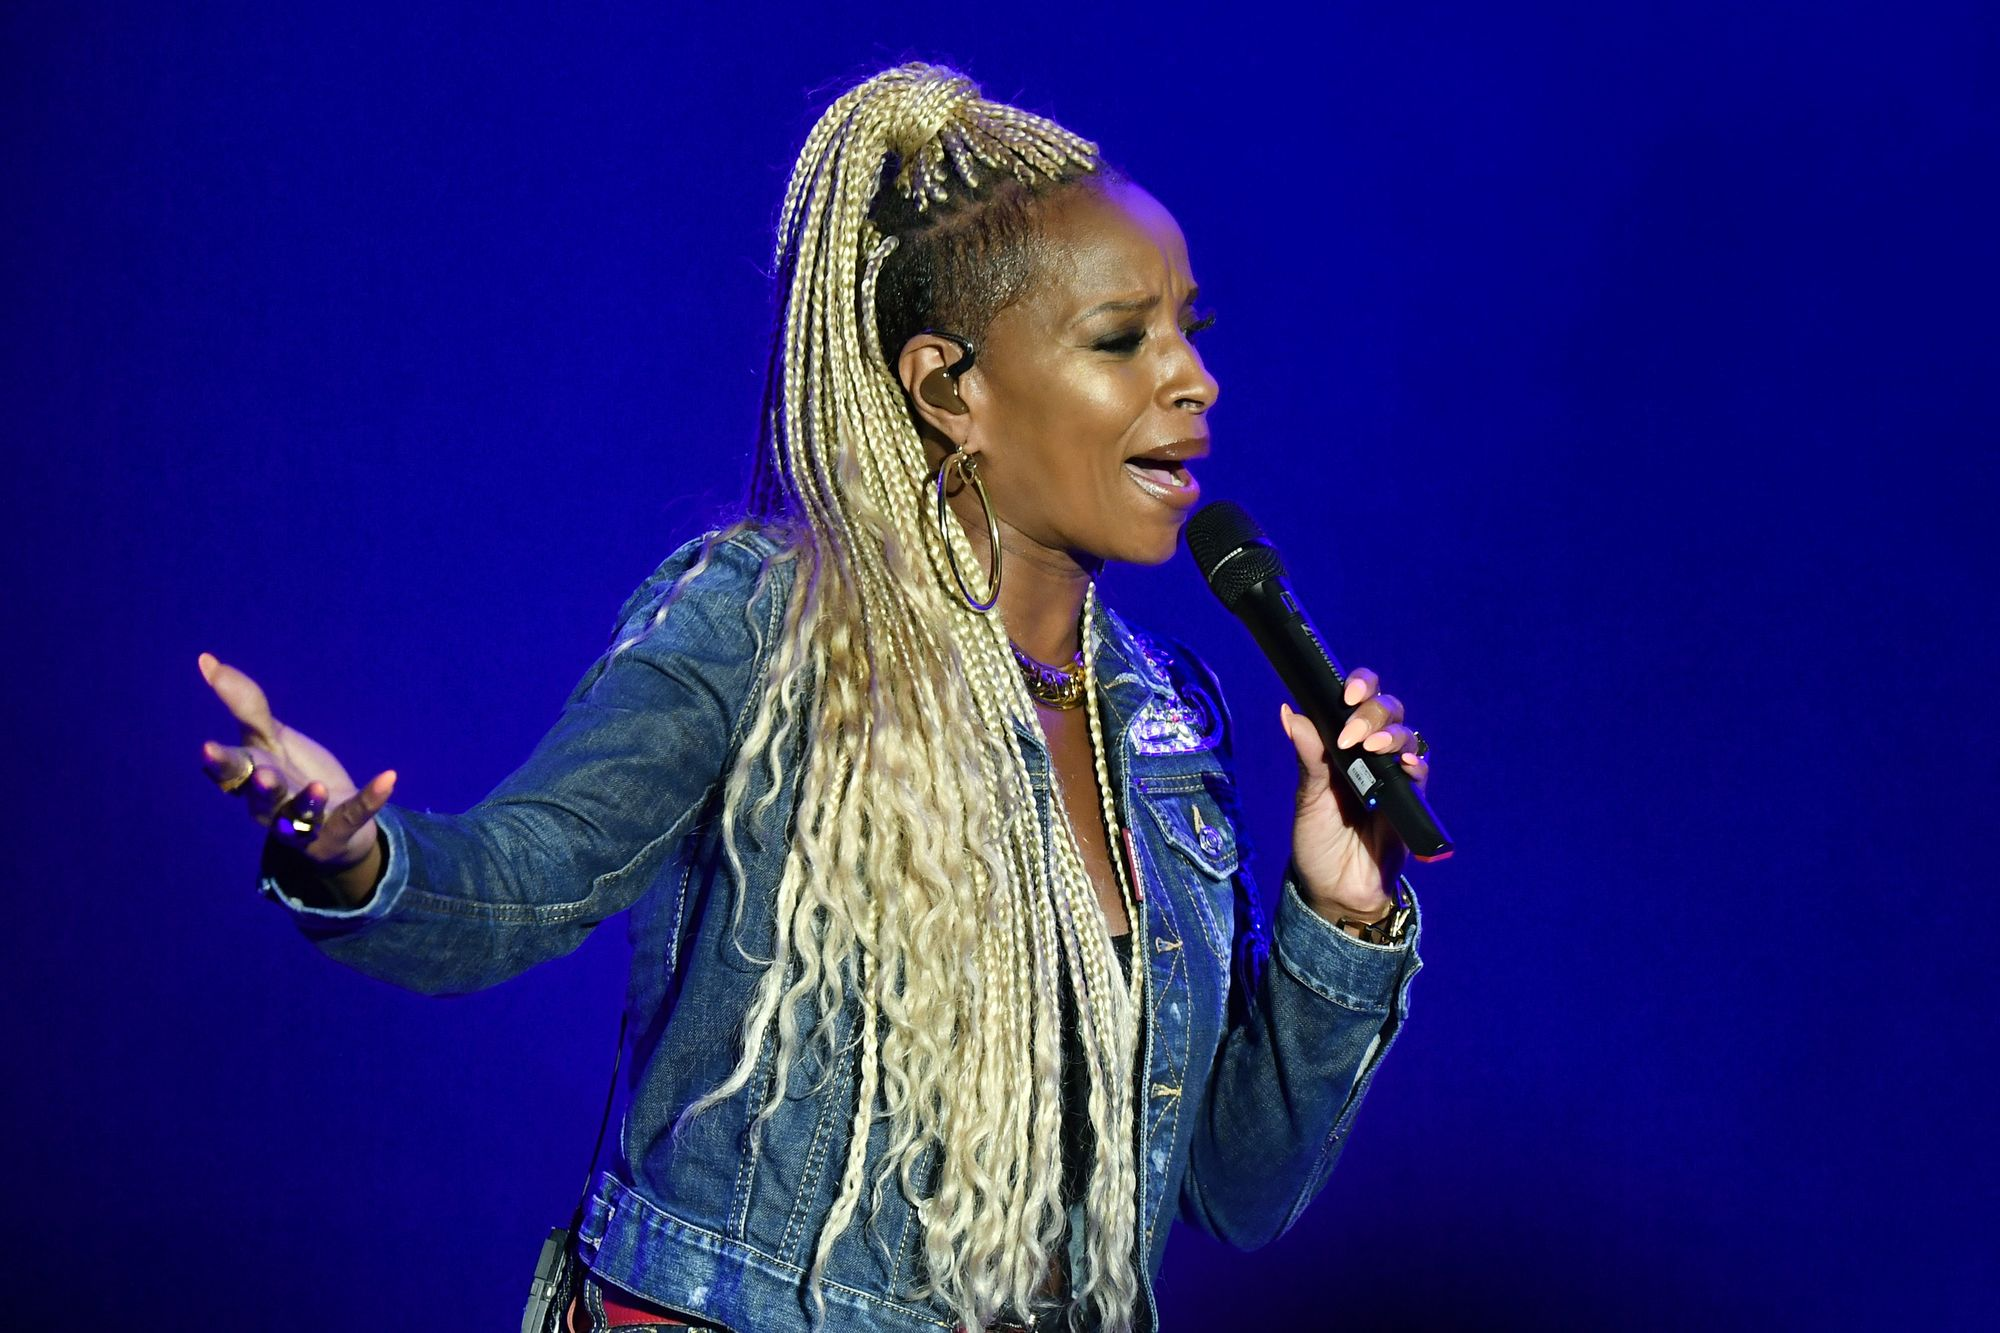 Loose box braids: Side shot of Mary J. Blige in concert with platinum blonde long box braids and an undercut, wearing denim and singing on stage.